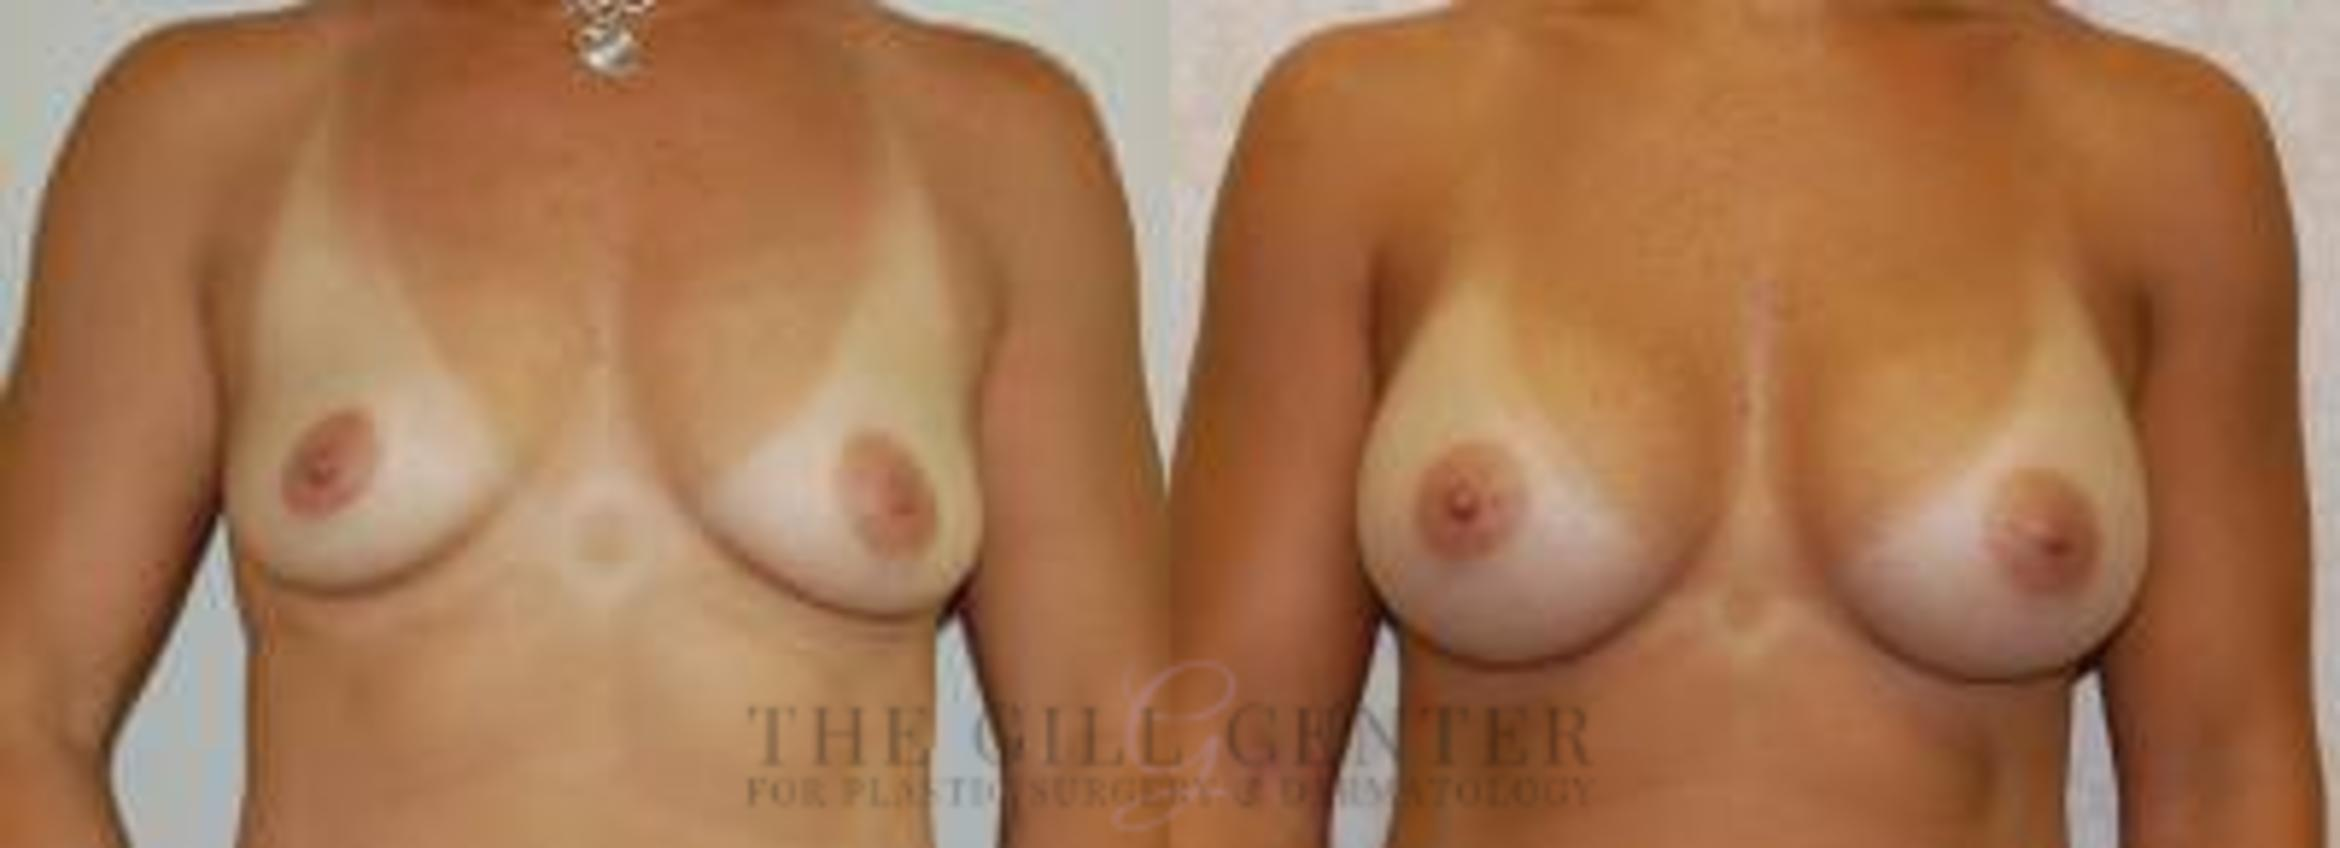 Breast Augmentation Case 36 Before & After Front | Shenandoah, TX | The Gill Center for Plastic Surgery and Dermatology